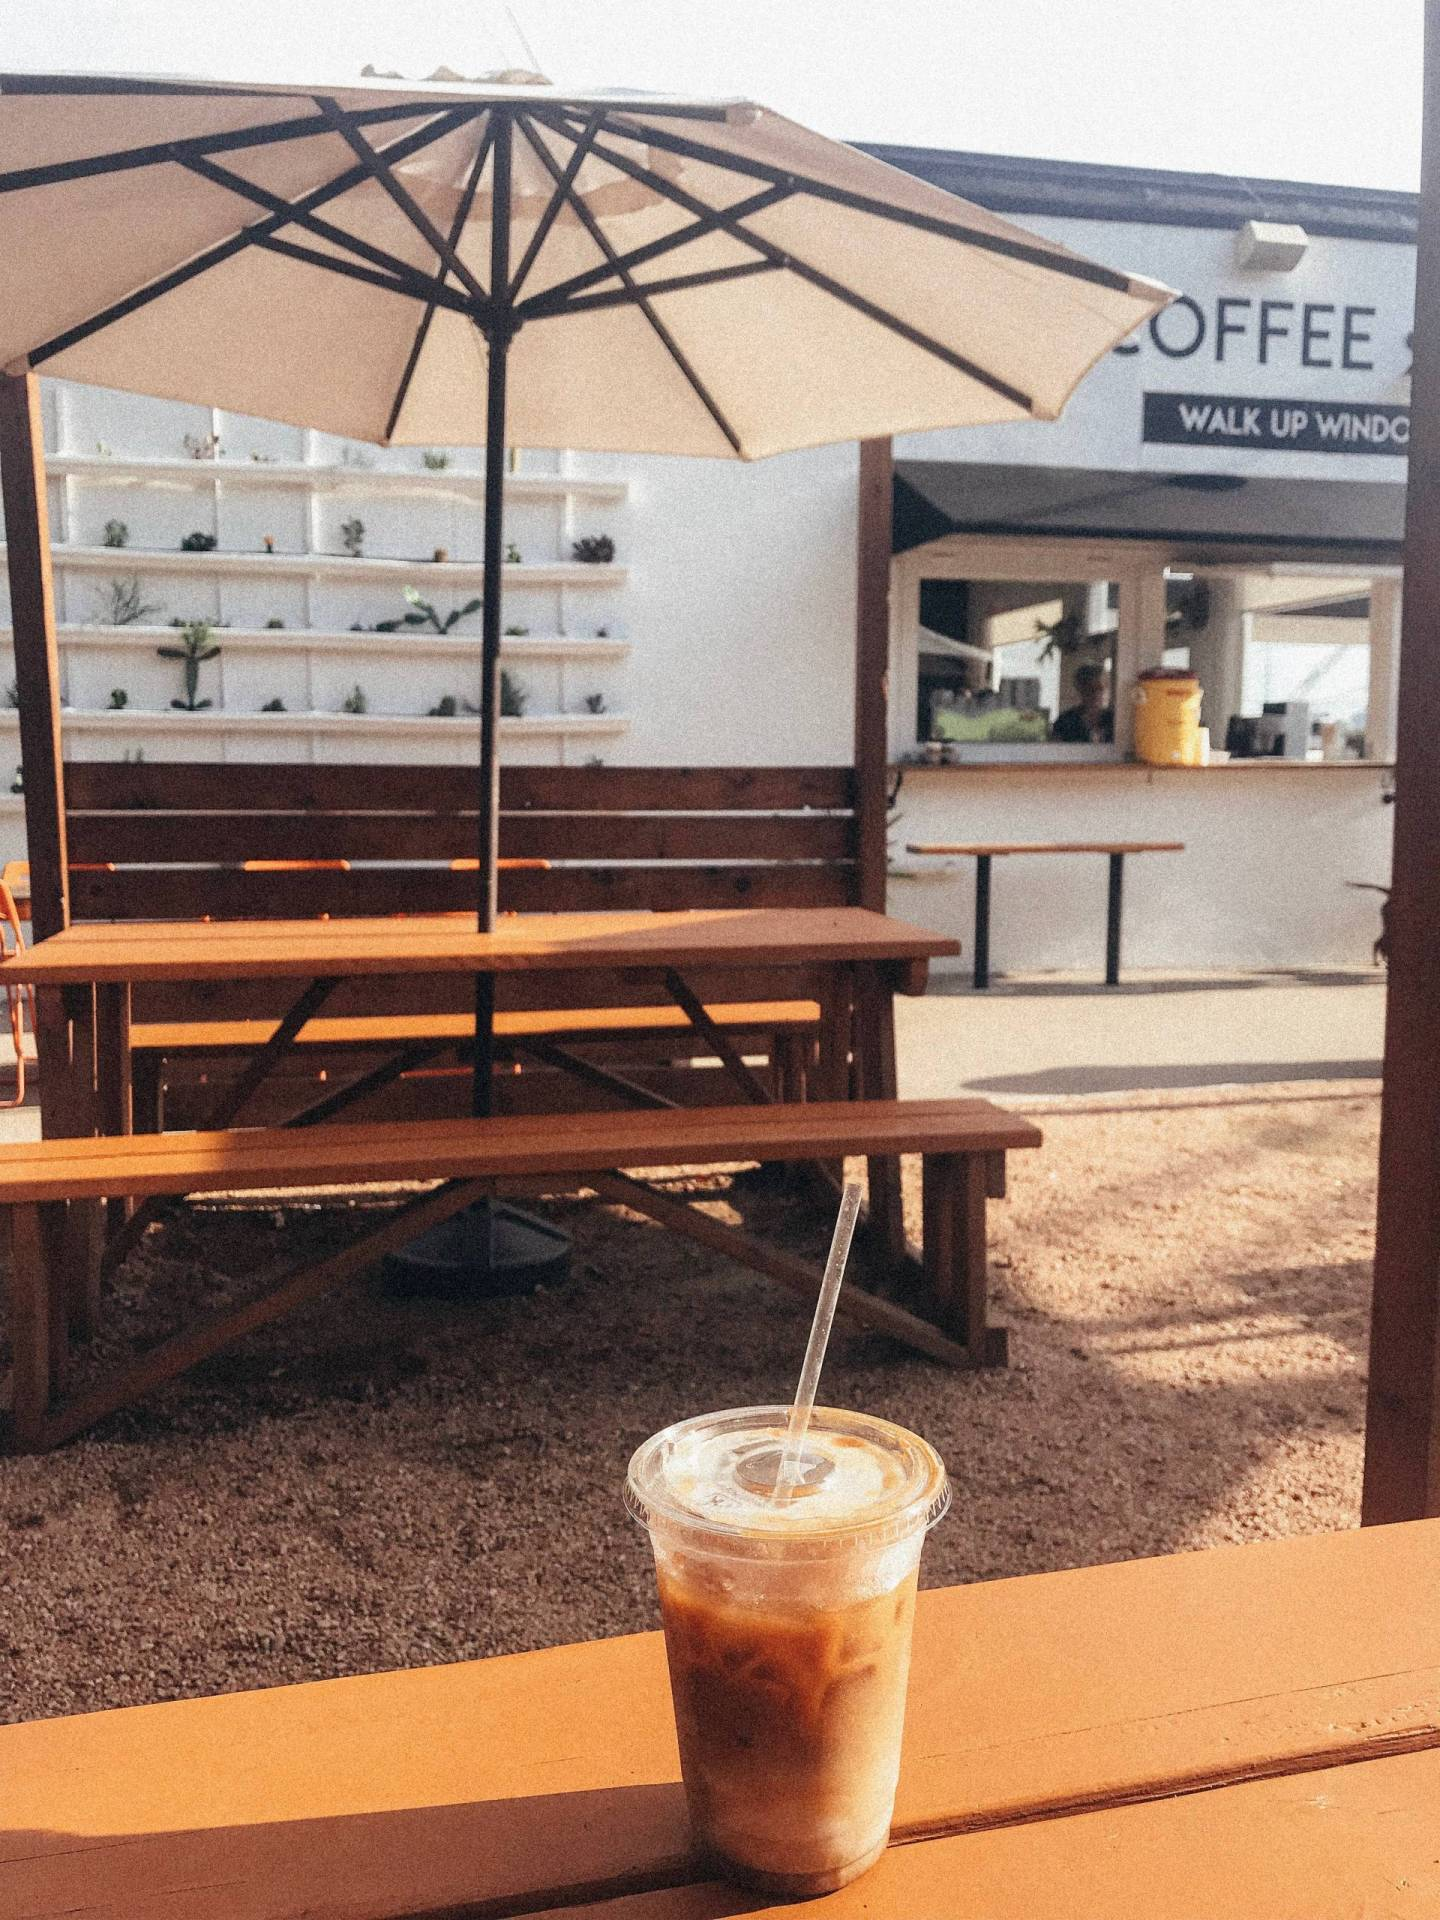 10 Best Coffee Shops in Dallas